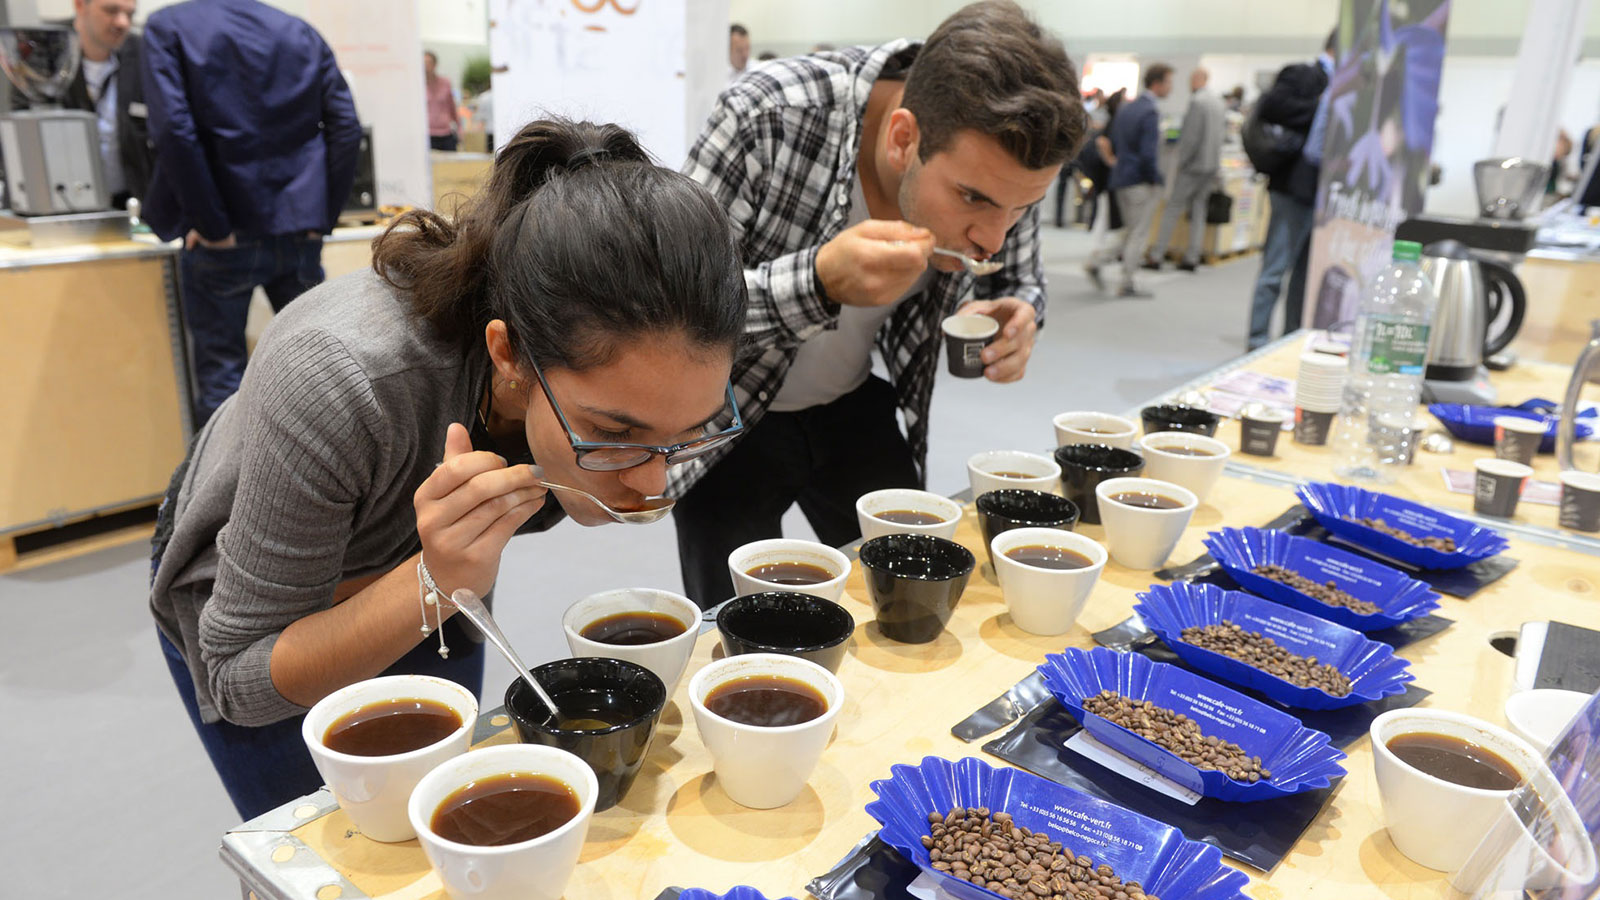 Two visitors to the COTECA Coffee, Tea and Cocoa Global Industry Expo in the Hamburg exhibition halls